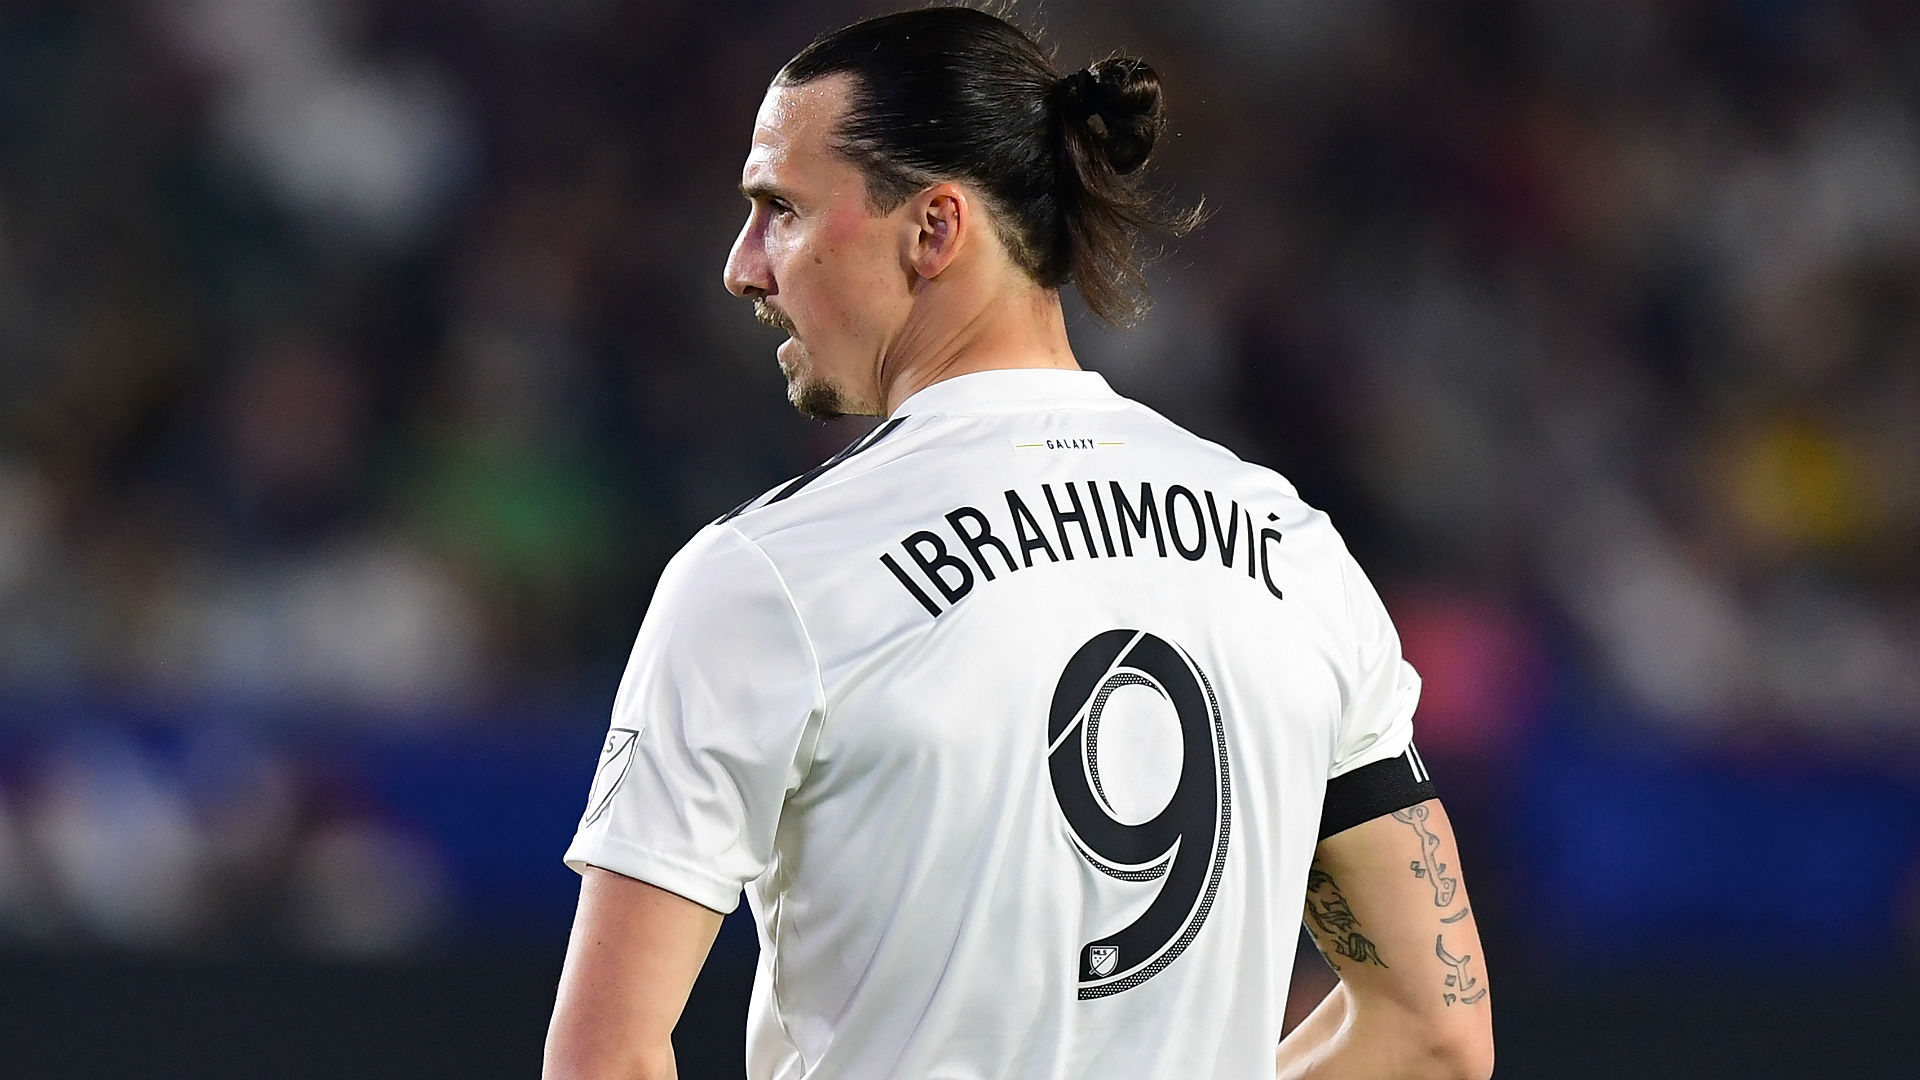 Zlatan karate-kicks home his 500th career goal